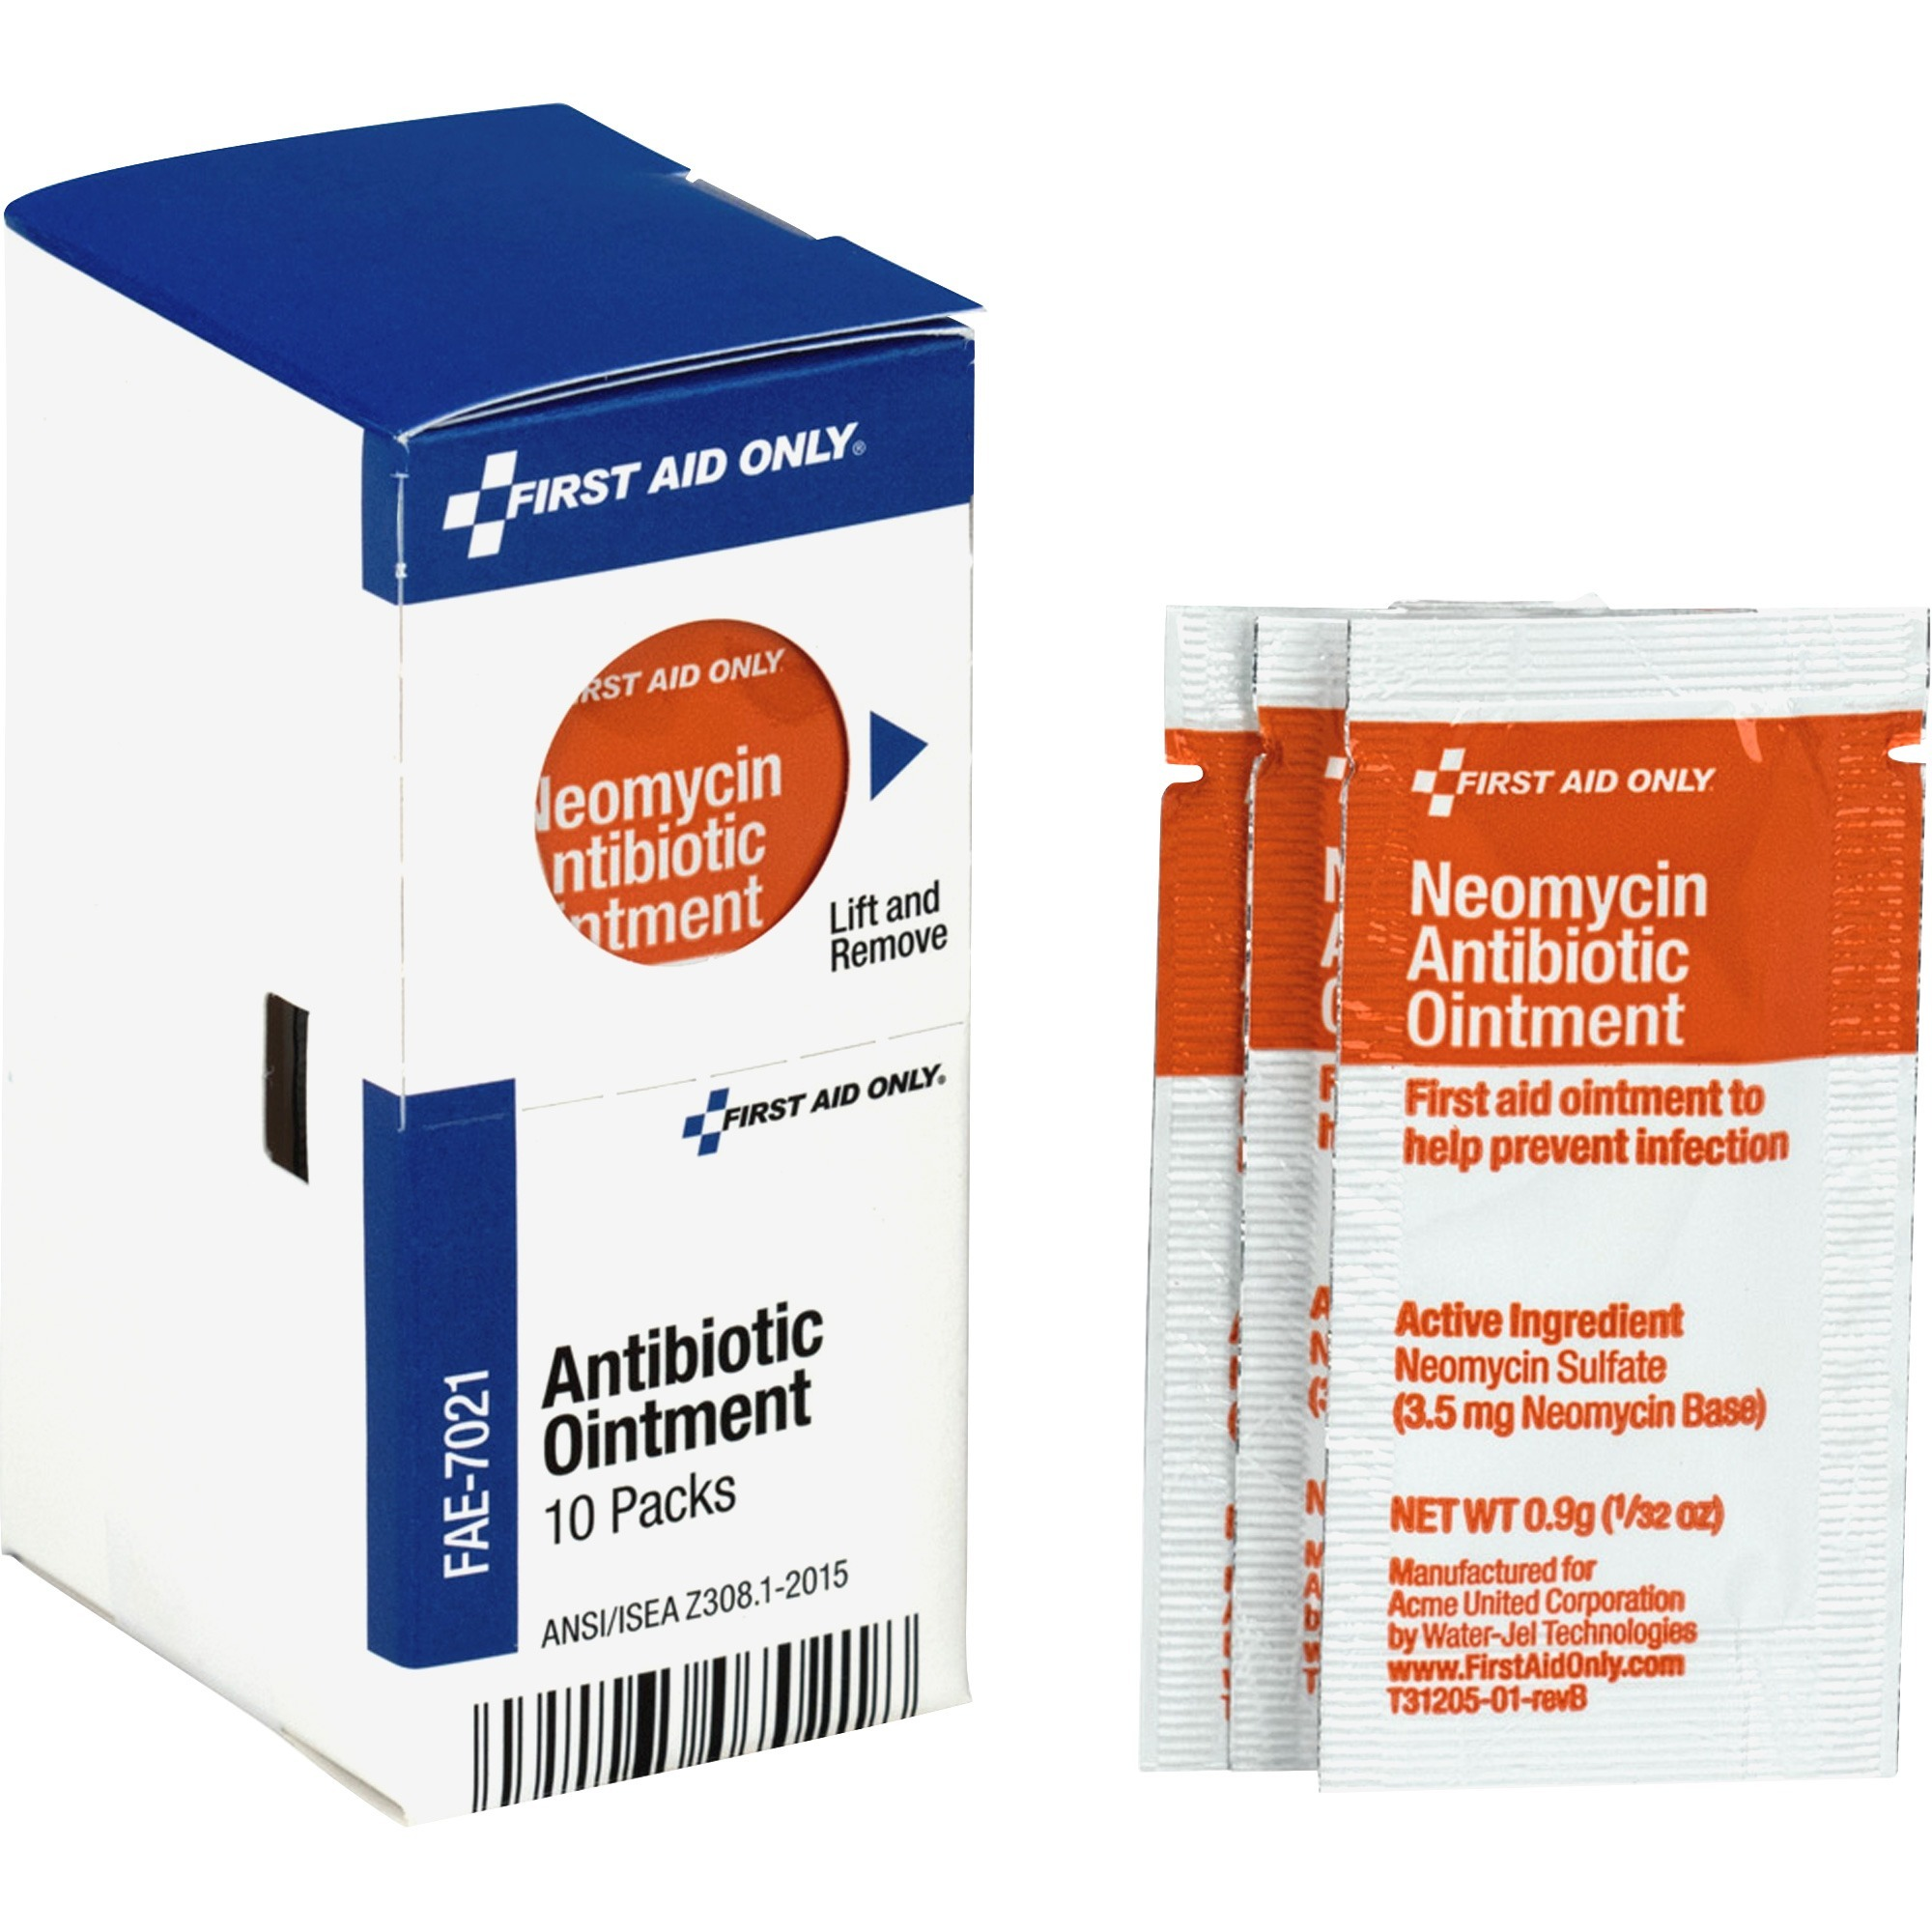 First Aid Only, Inc First Aid Only Antibiotic Ointment - For Cut, Scrape,  Burn - 10 / Box